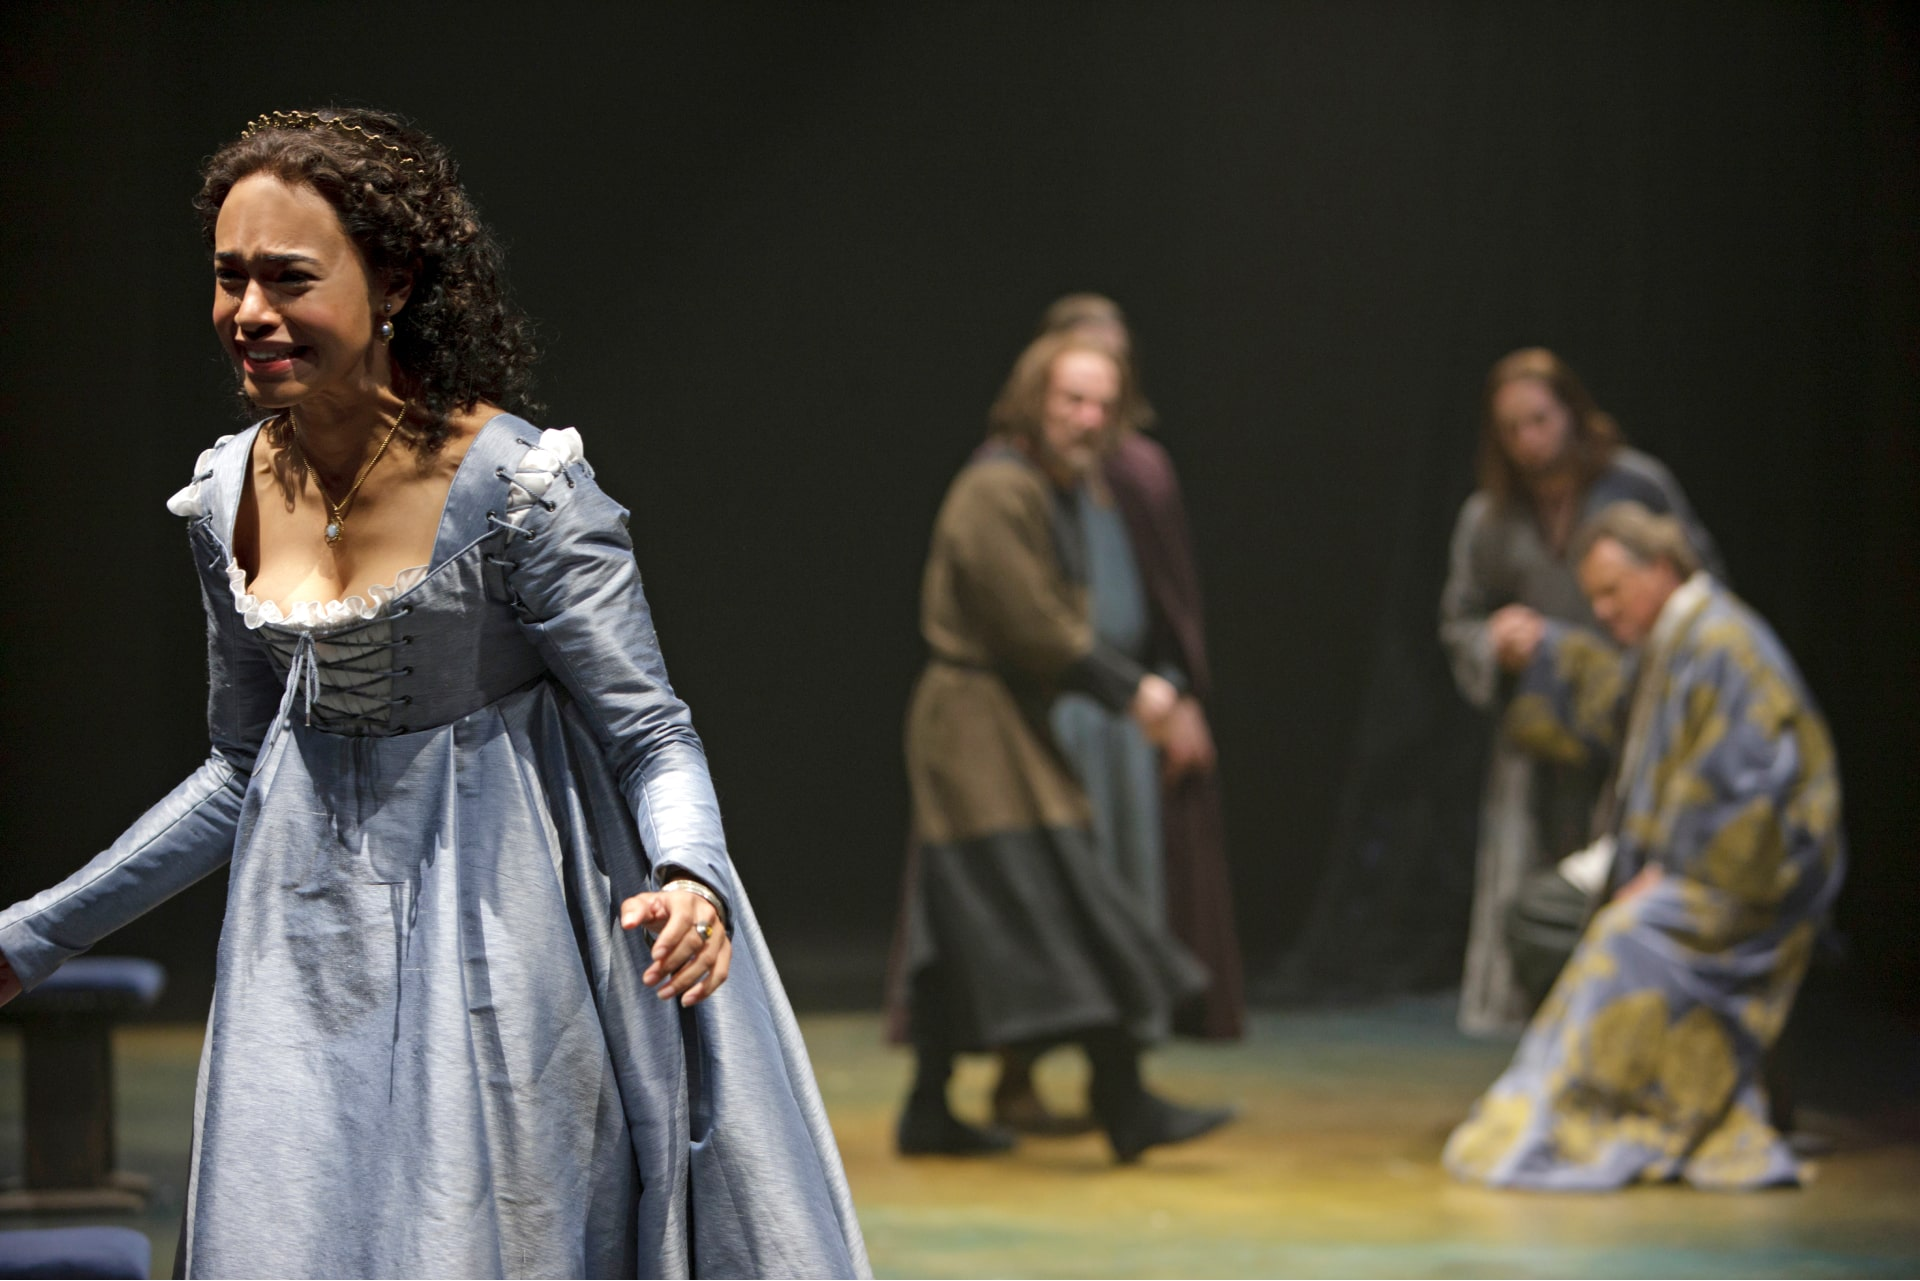 Woman in blue gown stands crying with out-of-focus men in background.